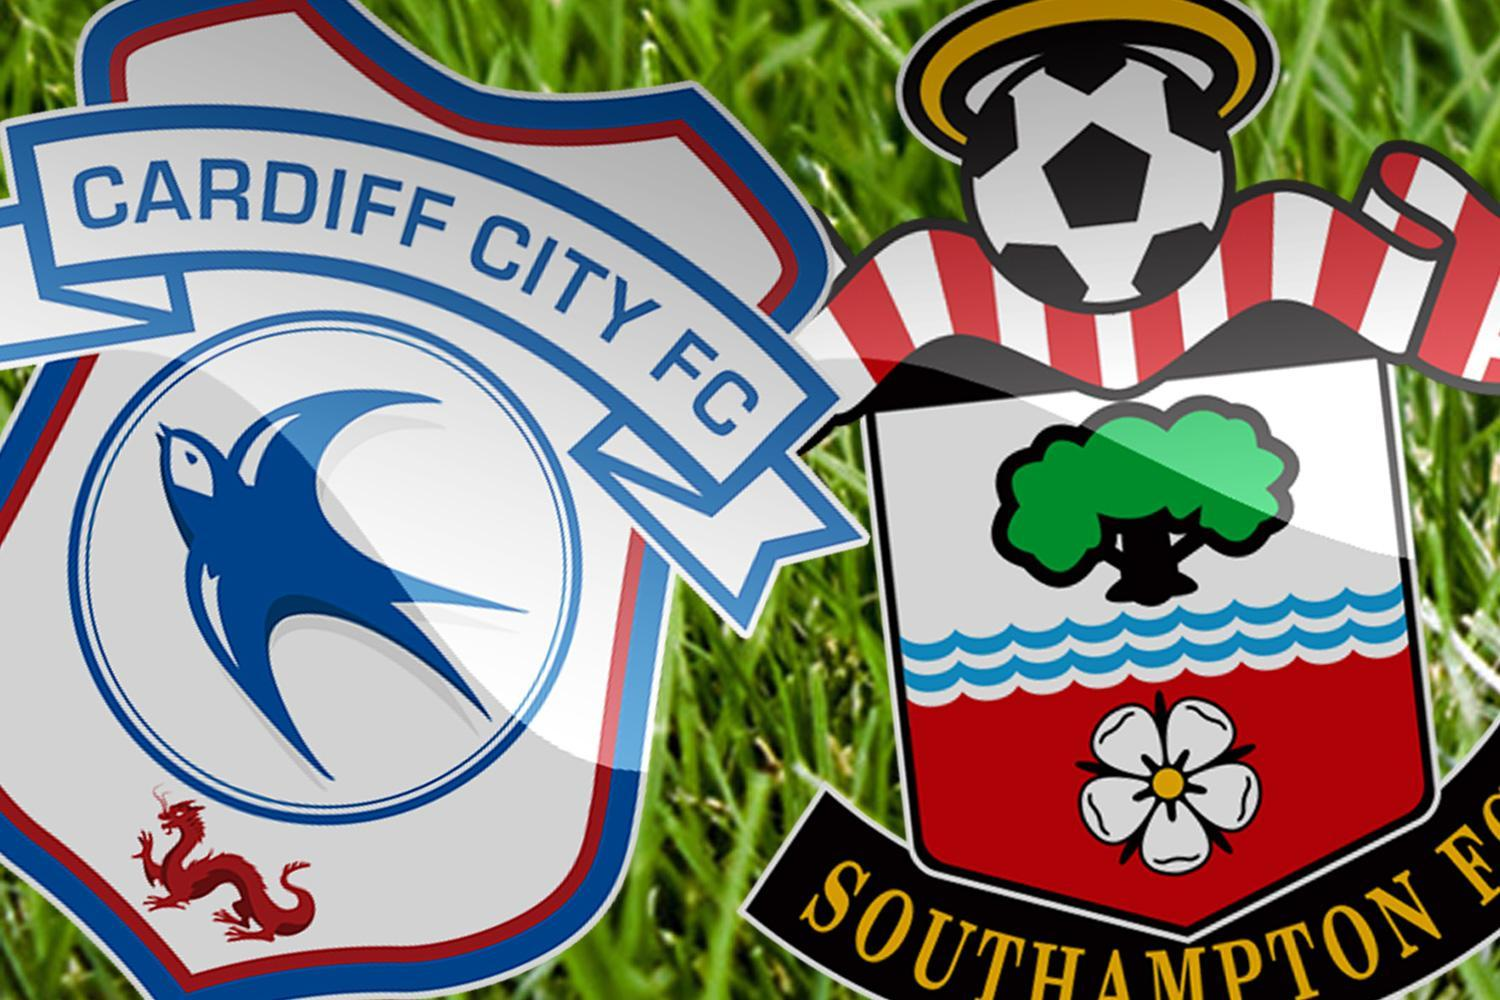 Cardiff vs Southampton LIVE SCORE: Latest updates from Premier League clash at the Cardiff City Stadium